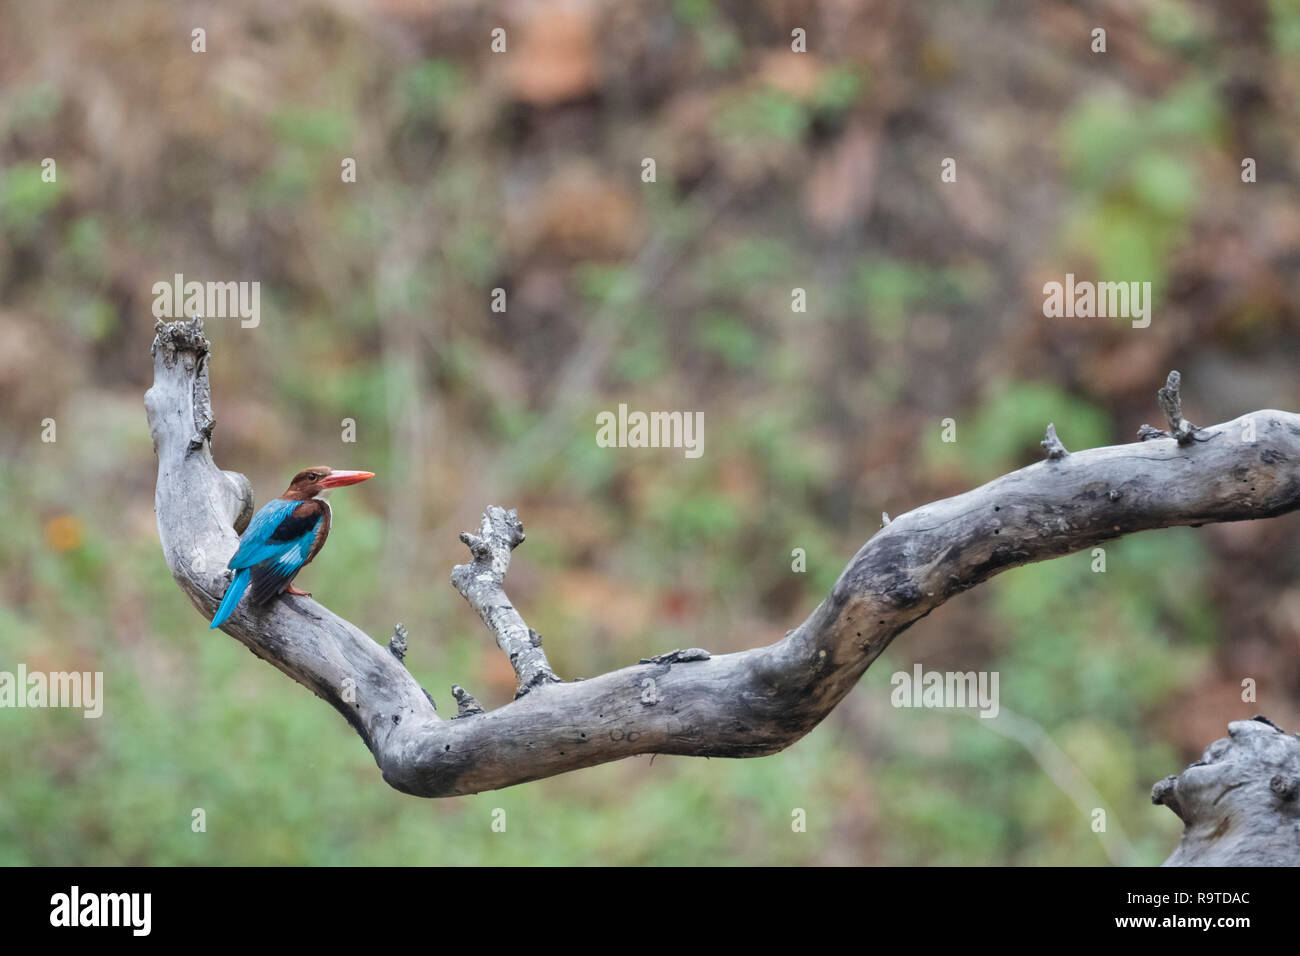 White-breasted Kingfisher (Halcyon smyrnensis) perched on branch. Corbett National Park. Uttarakhand. India. - Stock Image